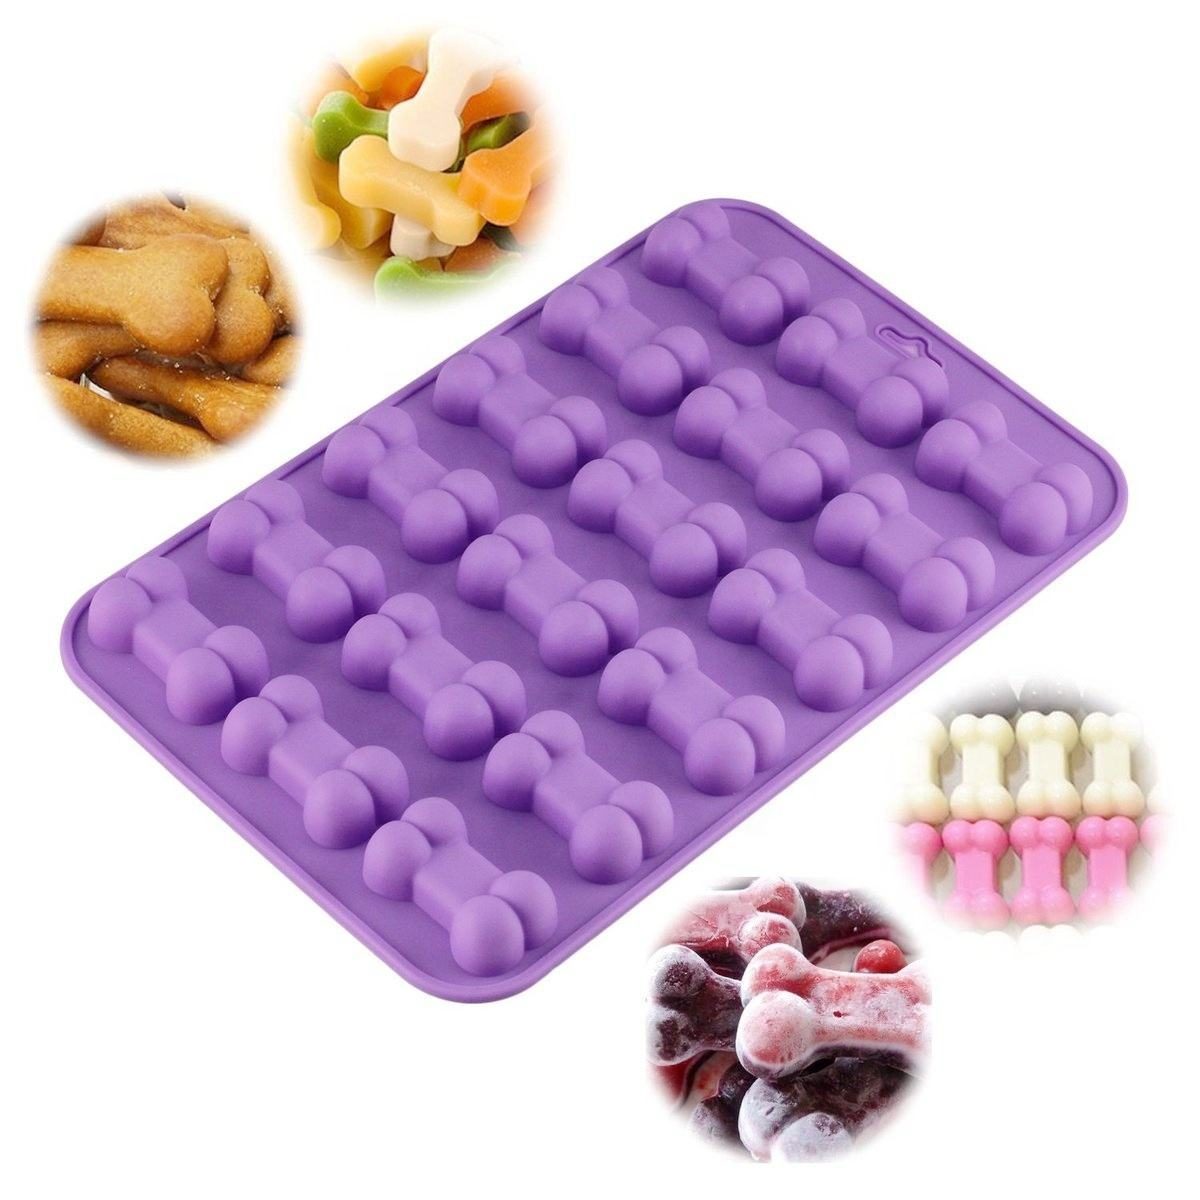 18 Units 3D Sugar Fondant Cake Dog Bone Form Cutter Cookie Chocolate Silicone Molds Decorating Tools Kitchen Pastry Baking Molds